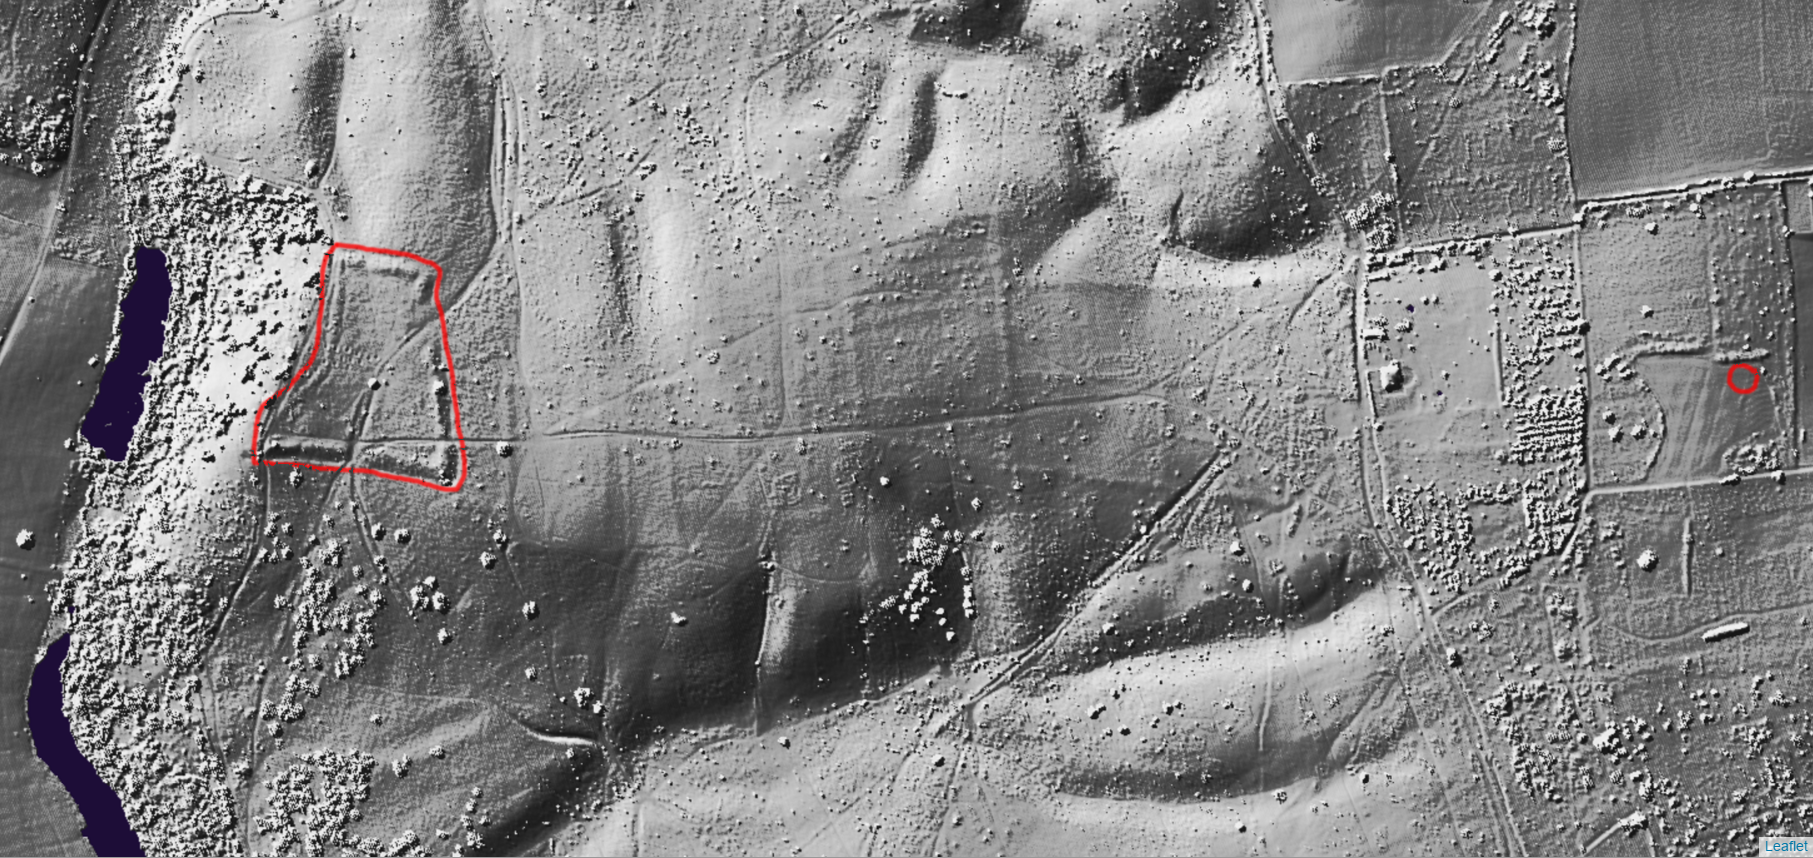 puttenham-common-lidar_edited-1